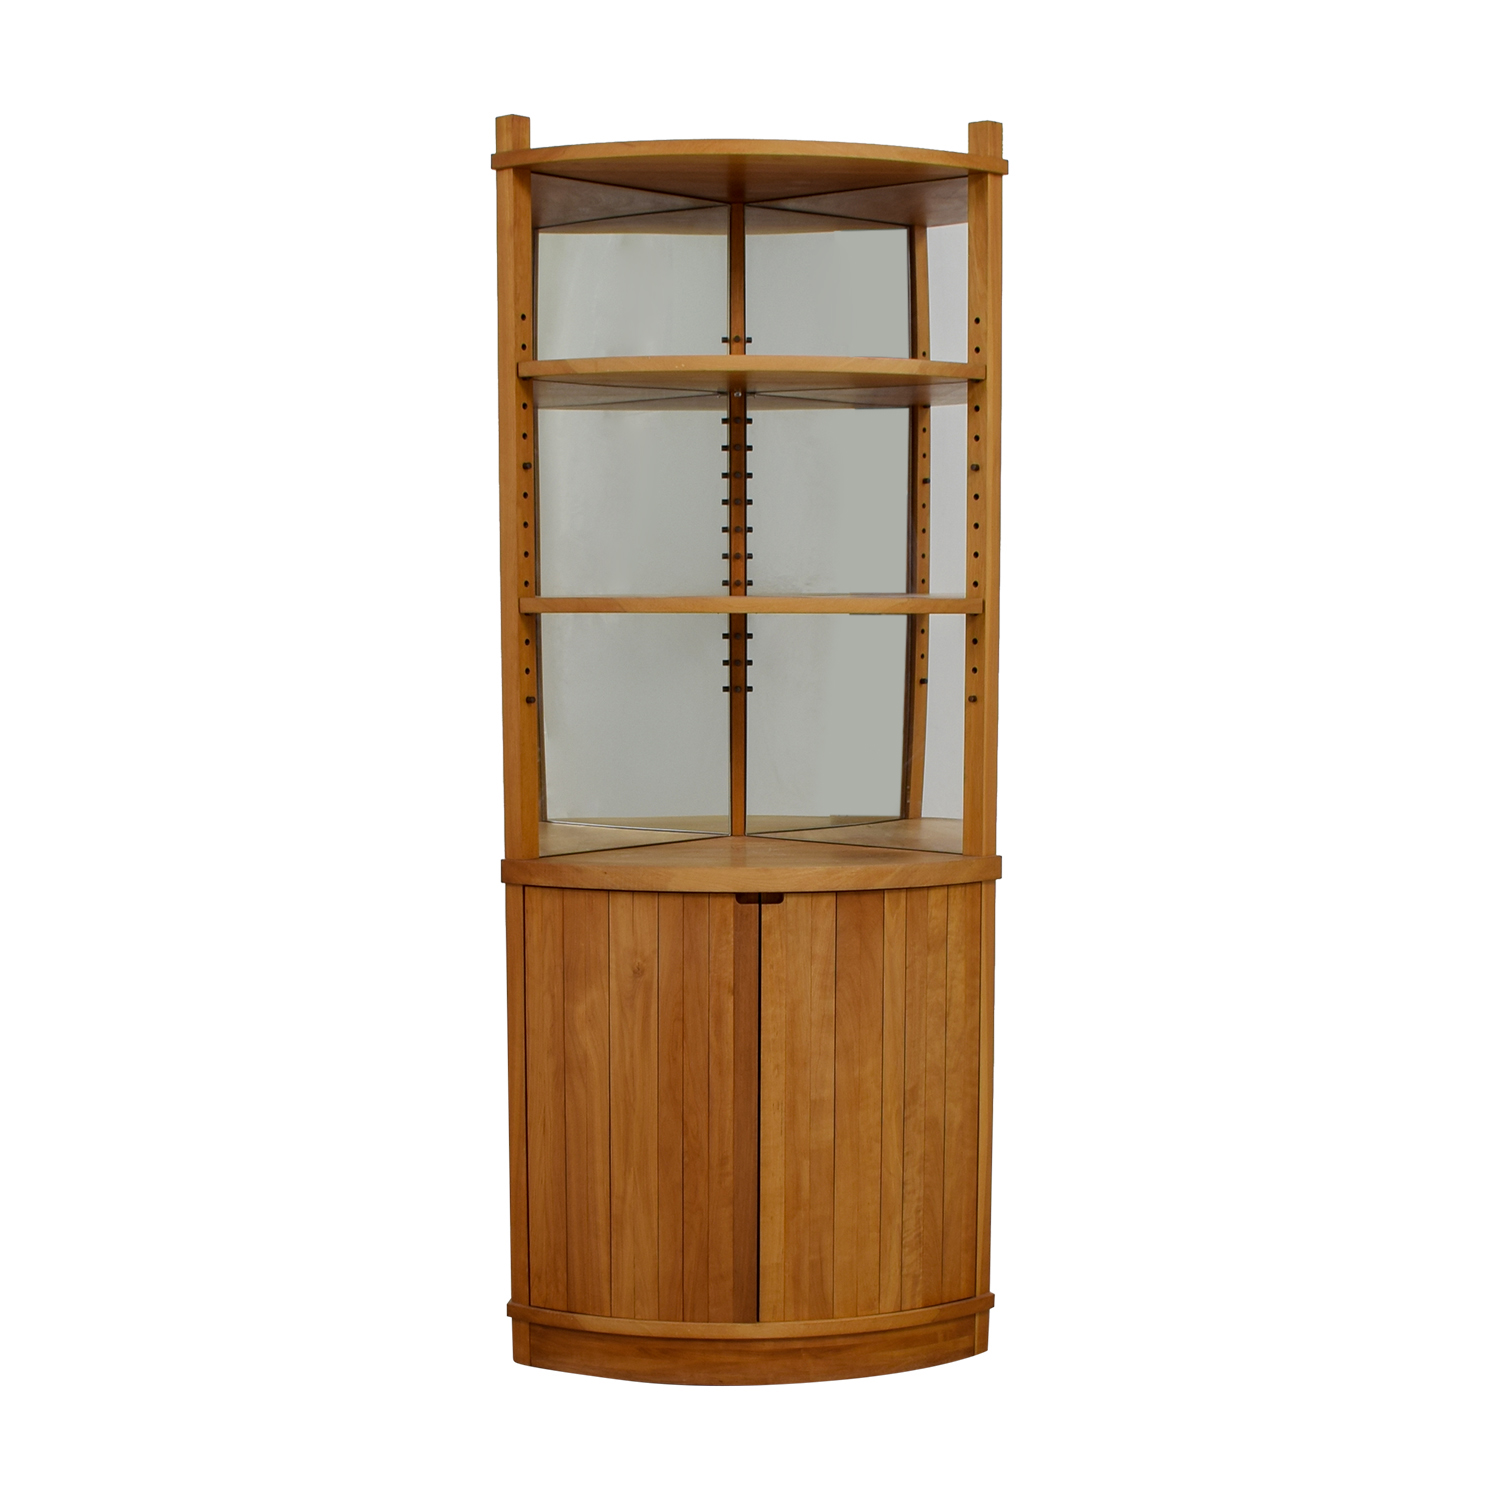 Cherry Wood Mirrored Corner Cabinet on sale